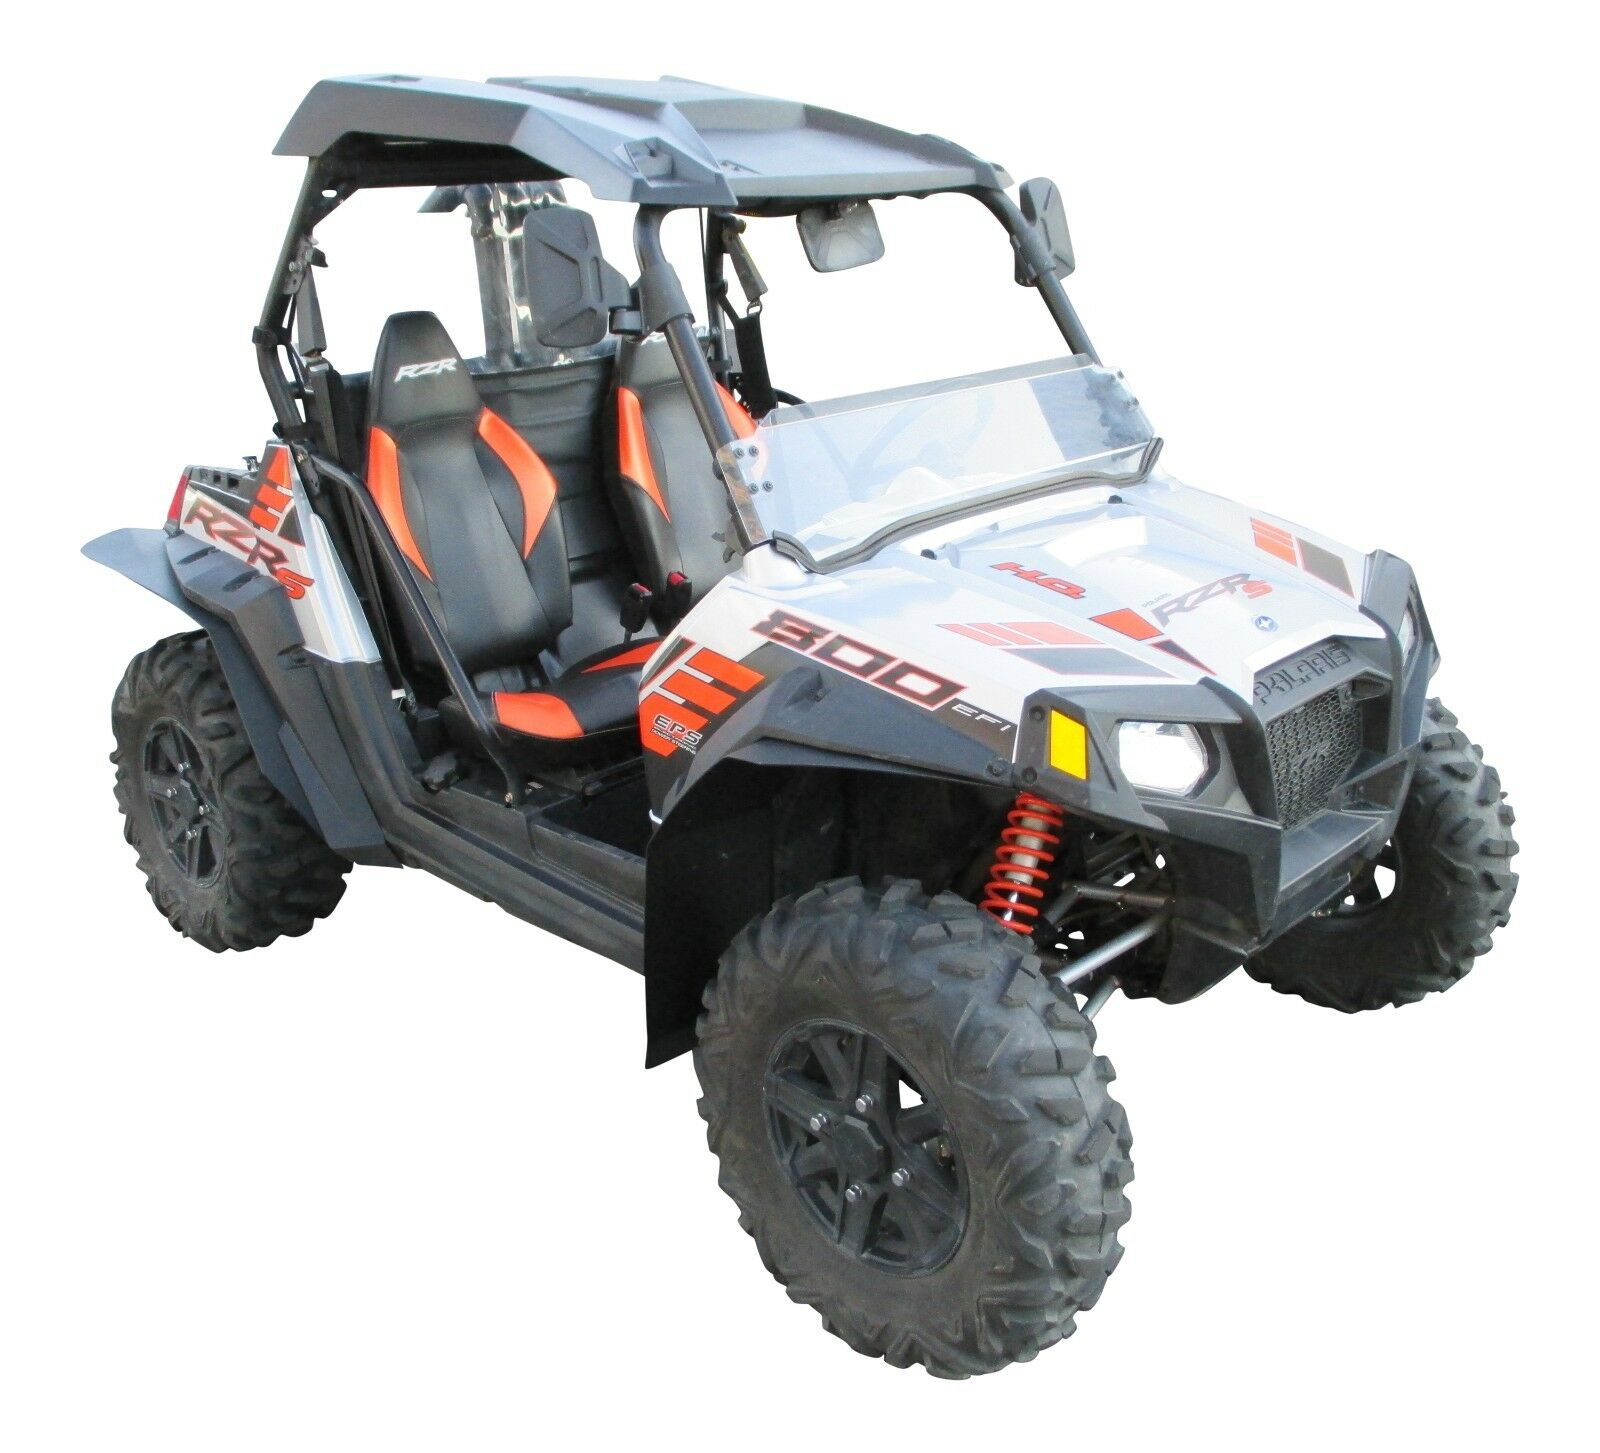 polaris rzr s 800 utv fender flares mud flaps by. Black Bedroom Furniture Sets. Home Design Ideas